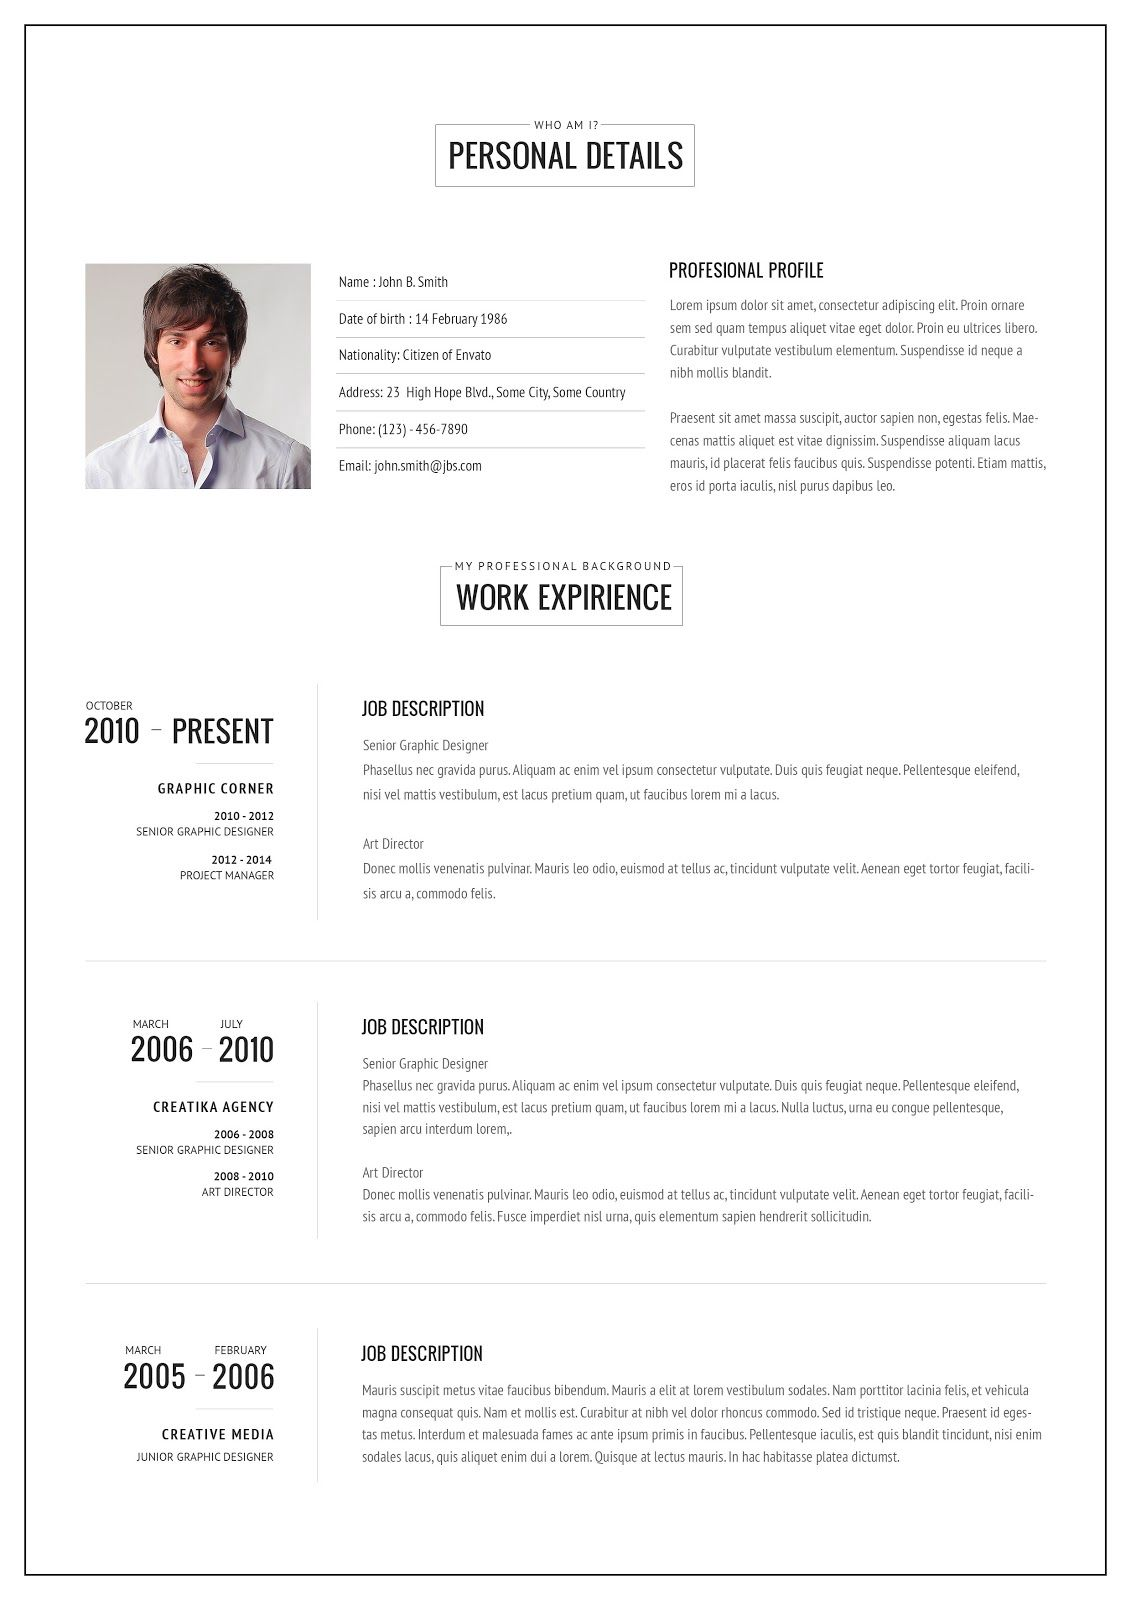 Resume Templates And Its Importance  Anil Kumar